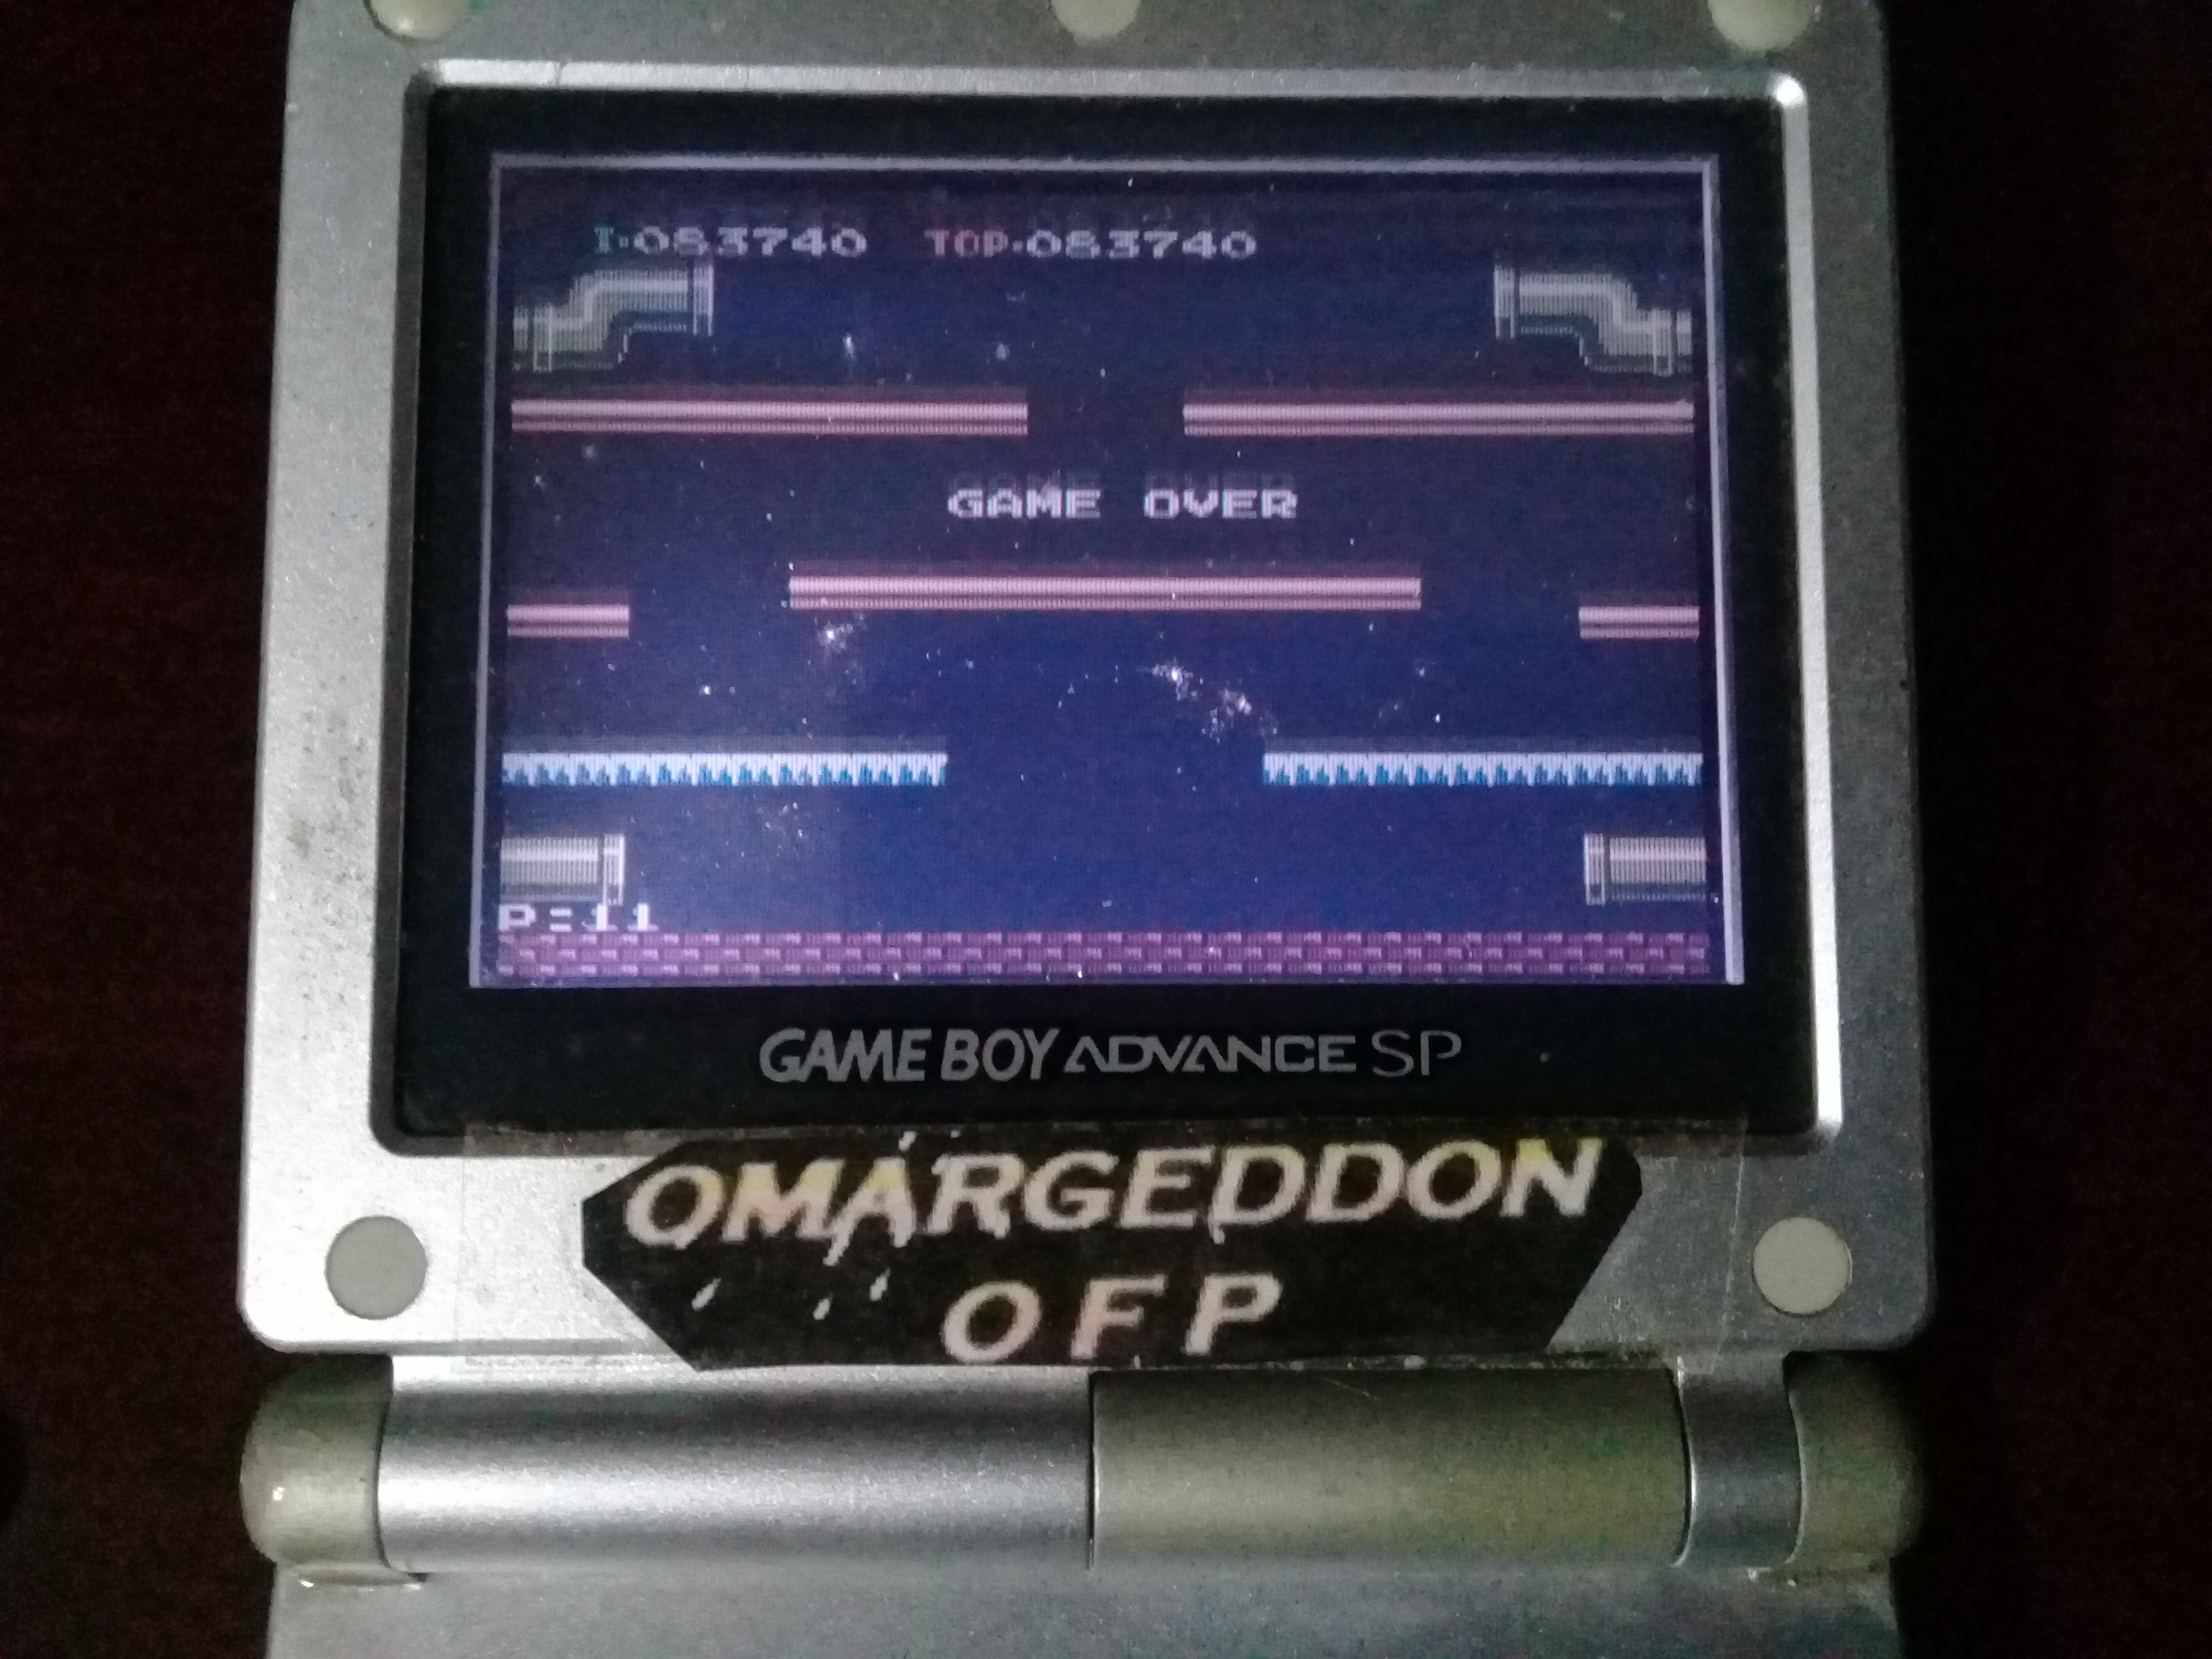 omargeddon: Famicom Mini Vol. 11: Mario Bros. (GBA) 83,740 points on 2020-04-05 19:57:54